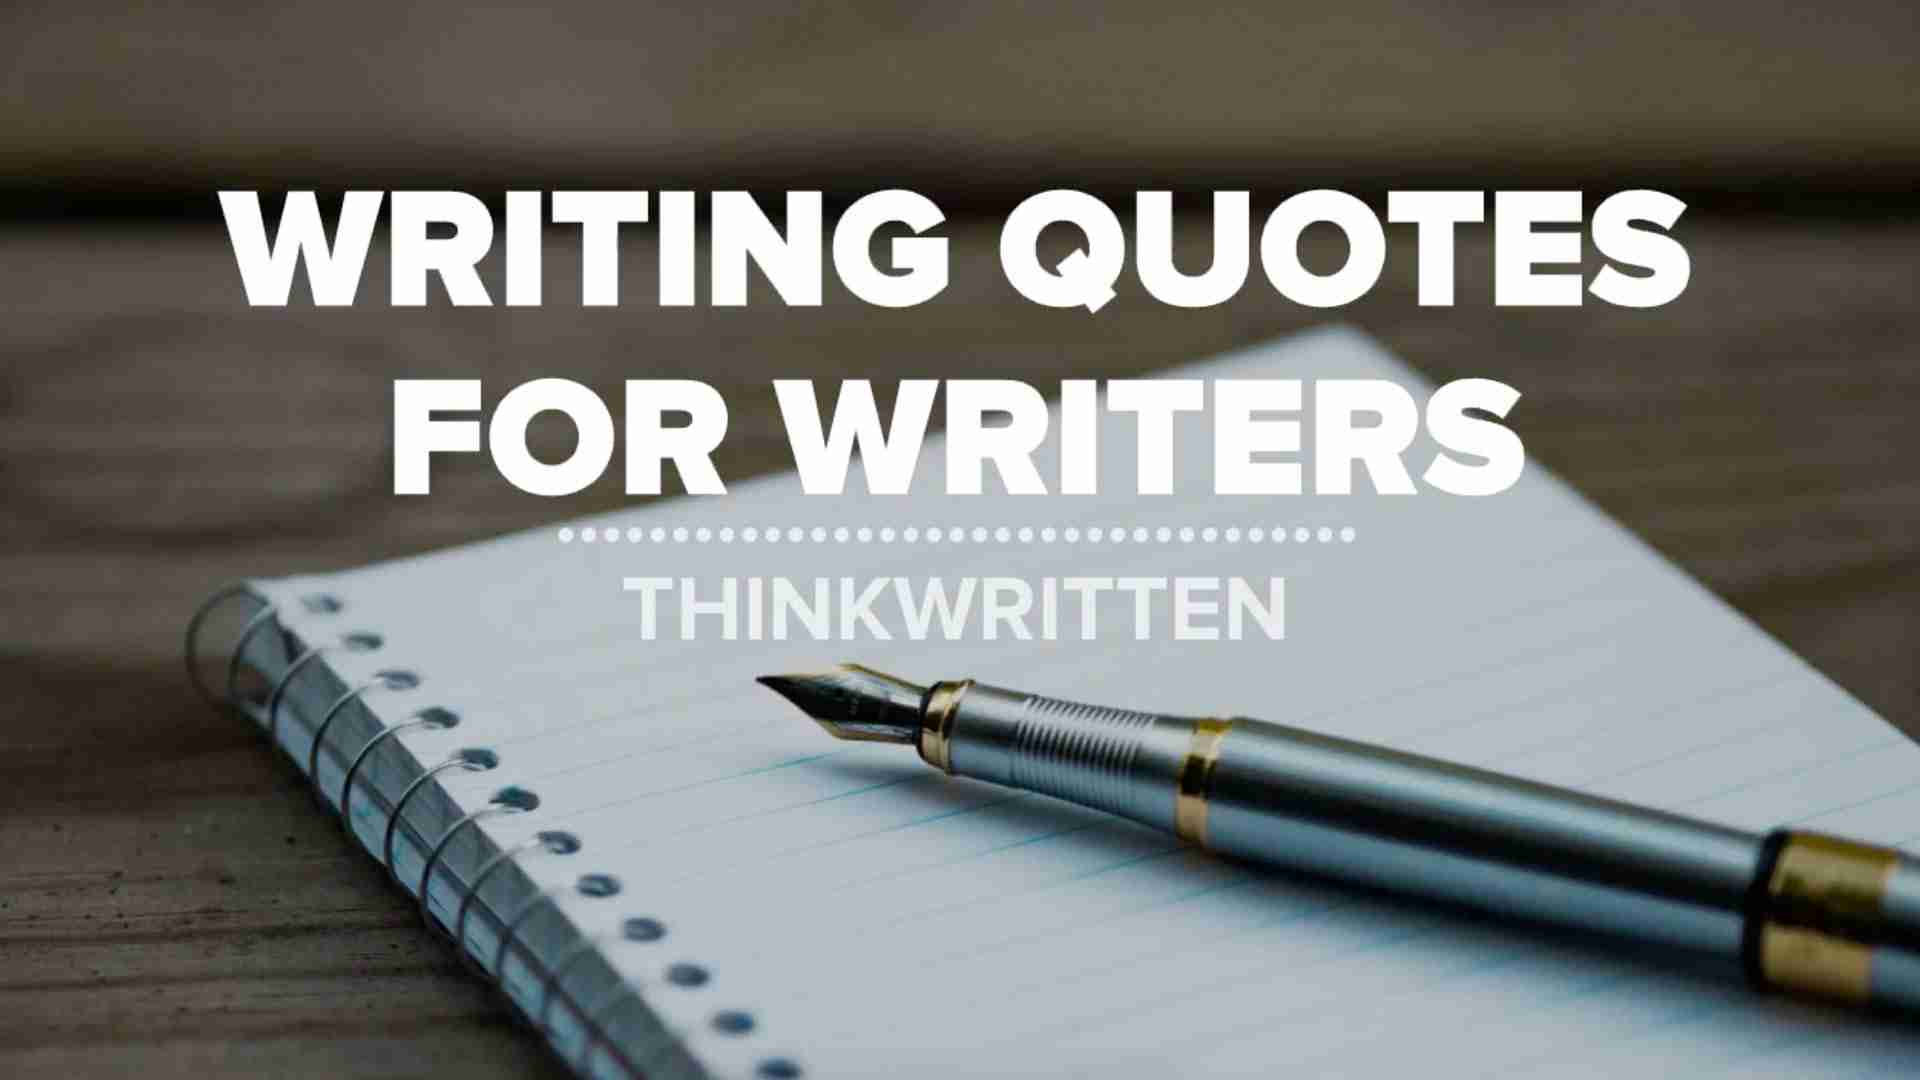 writing quotes: 101 quotes for writers to inspire you - thinkwritten